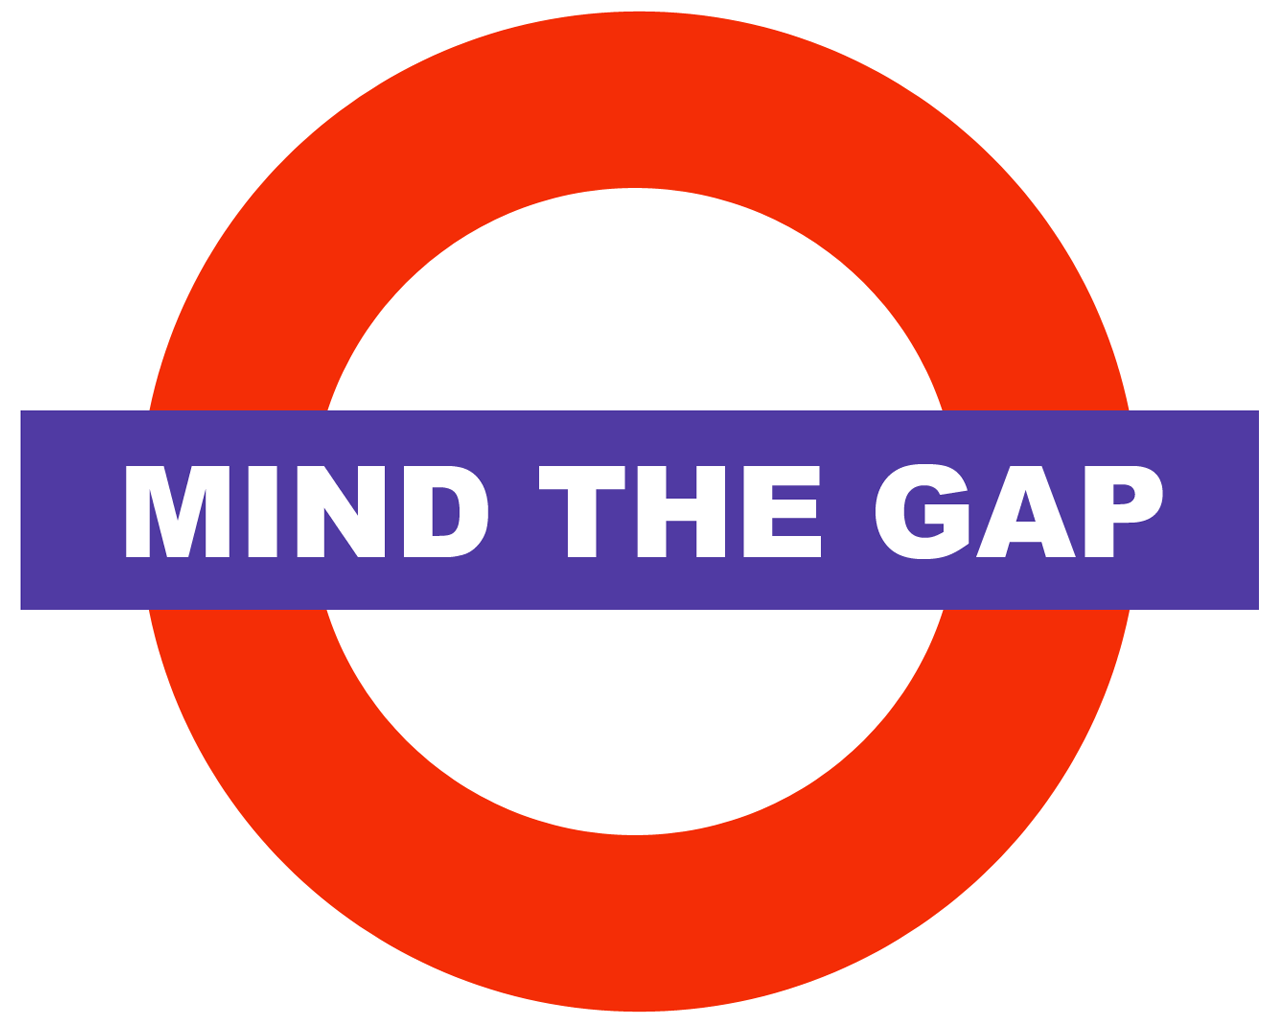 Mind the Gap 2  markmatters markmatters